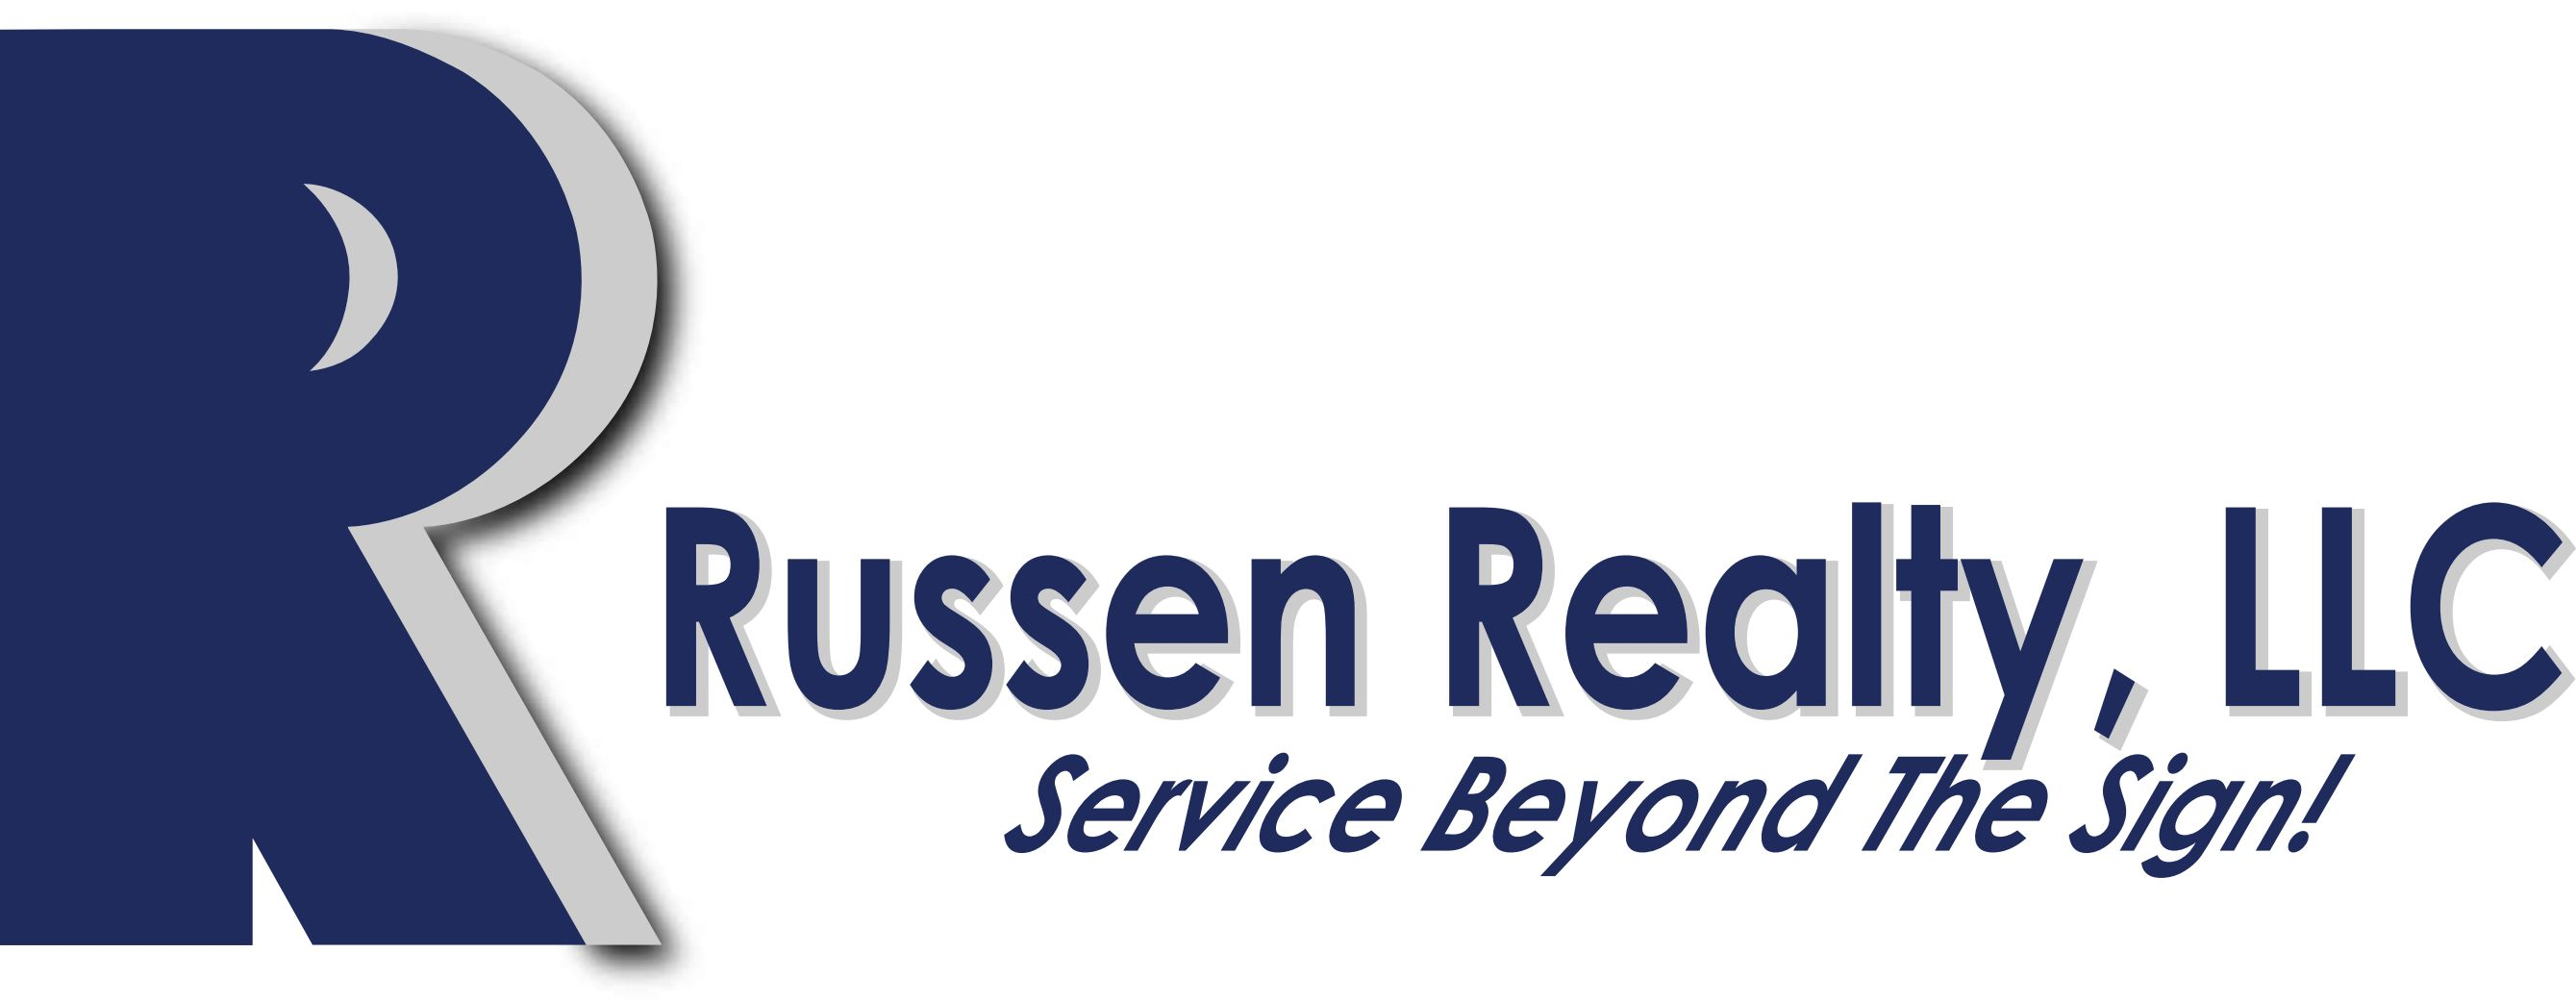 Russen Realty, LLC